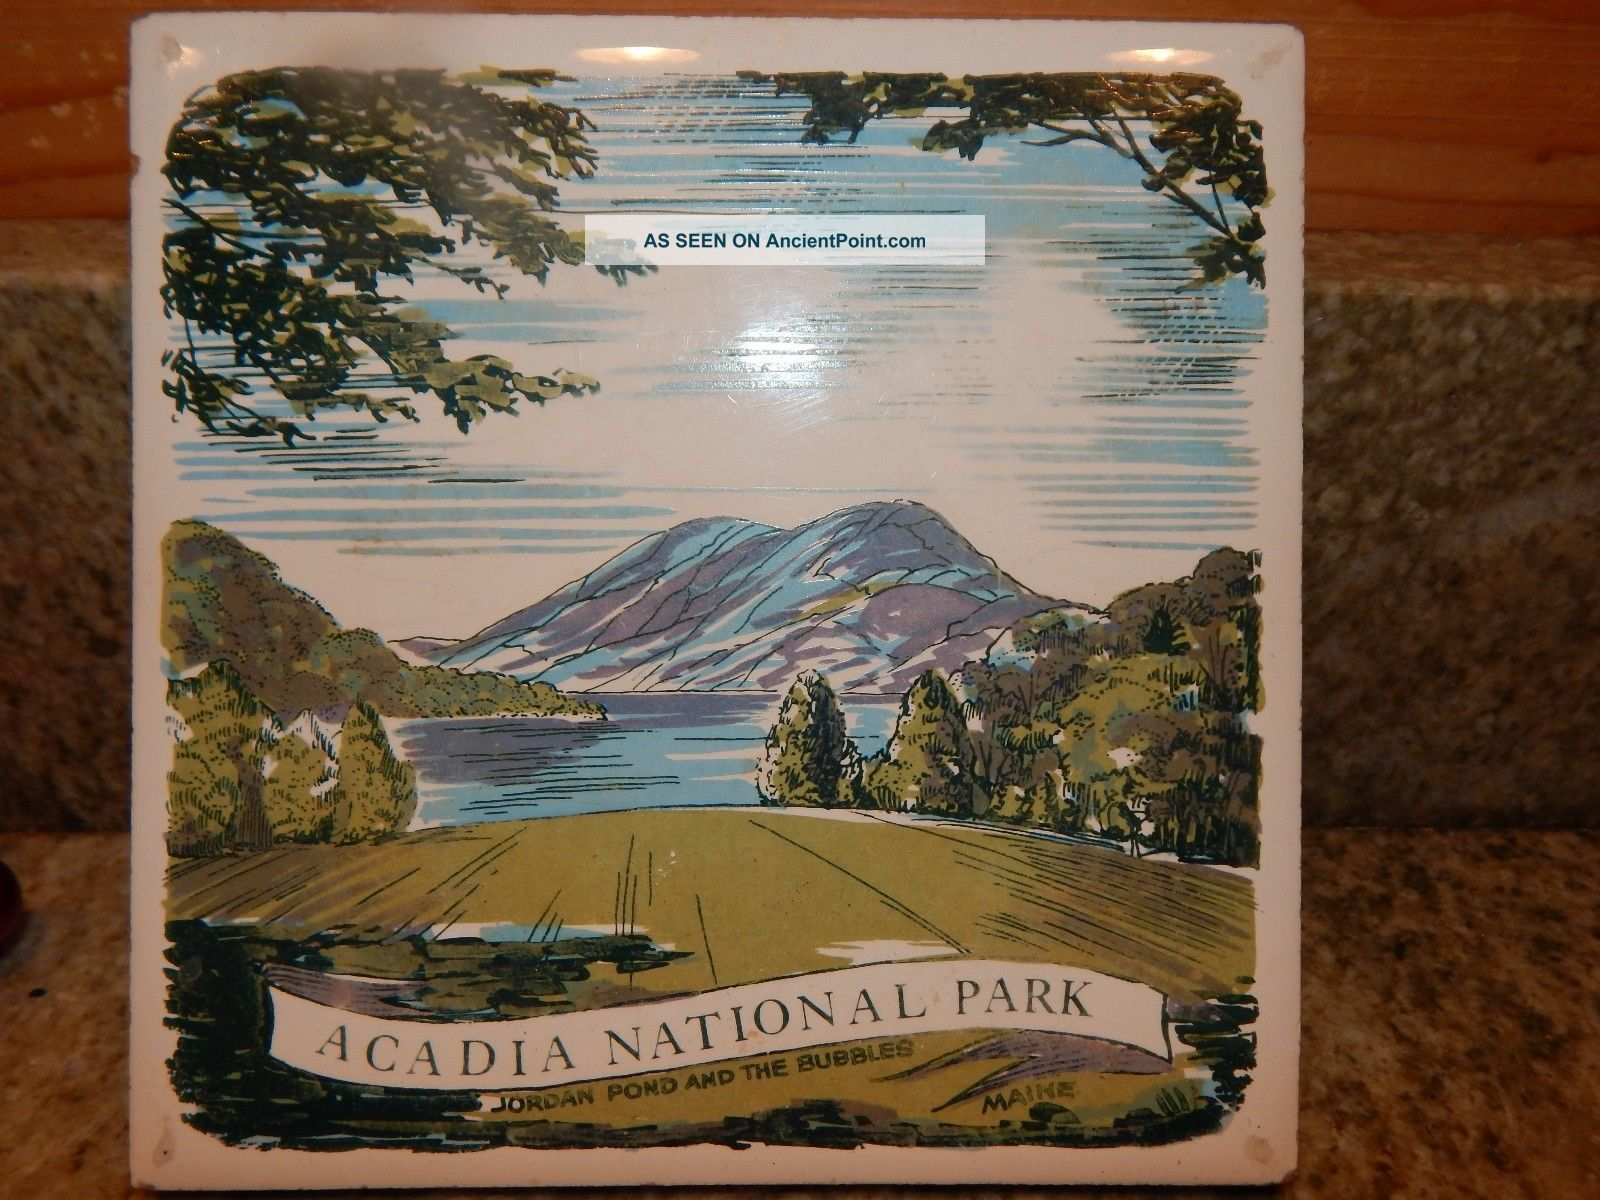 Acadia National Park Maine Ceramic Trivet Pot Holder,  Jordan Pond & The Bubbles Trivets photo